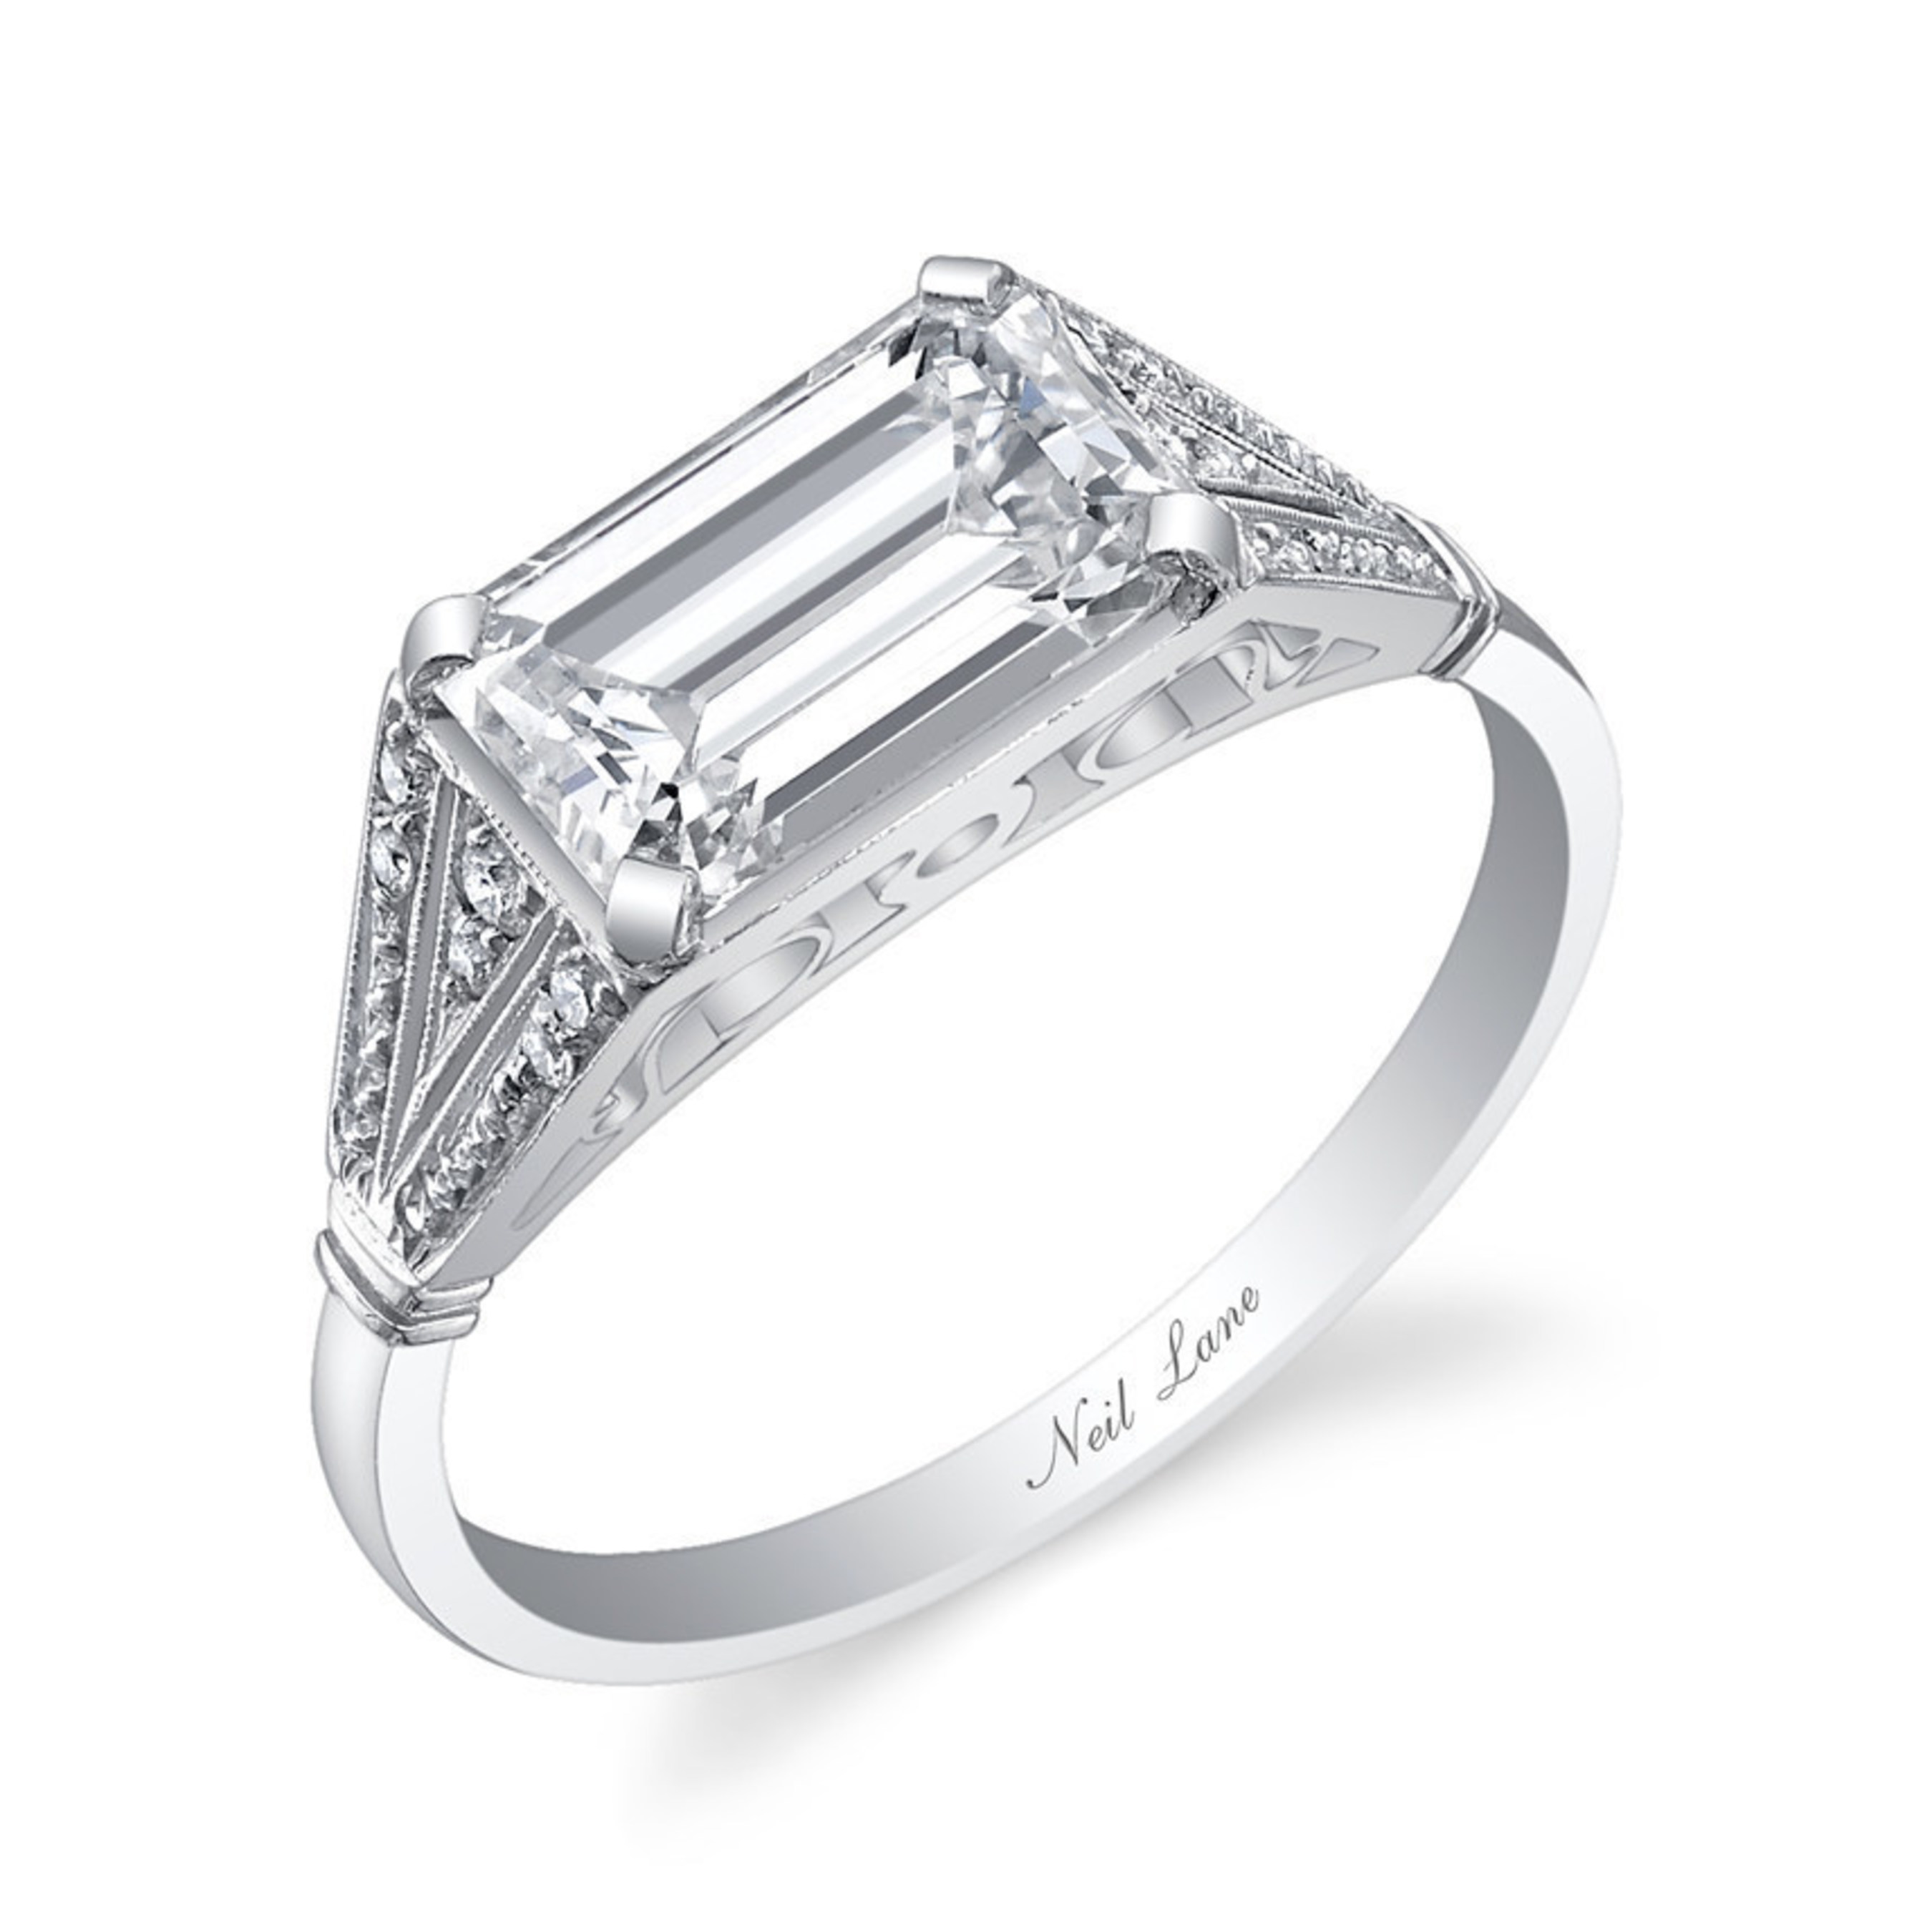 Tanner Tolbert proposed to Jade Roper on the season finale of Bachelor in Paradise with this stunning engagement ring handcrafted, designed and signed by Neil Lane. The diamond and platinum ring is centered on an emerald cut diamond, which is set horizontally. The ring is further accented with 12 round brilliant cut diamonds. Approximate total weight of all diamonds is 2-carats.